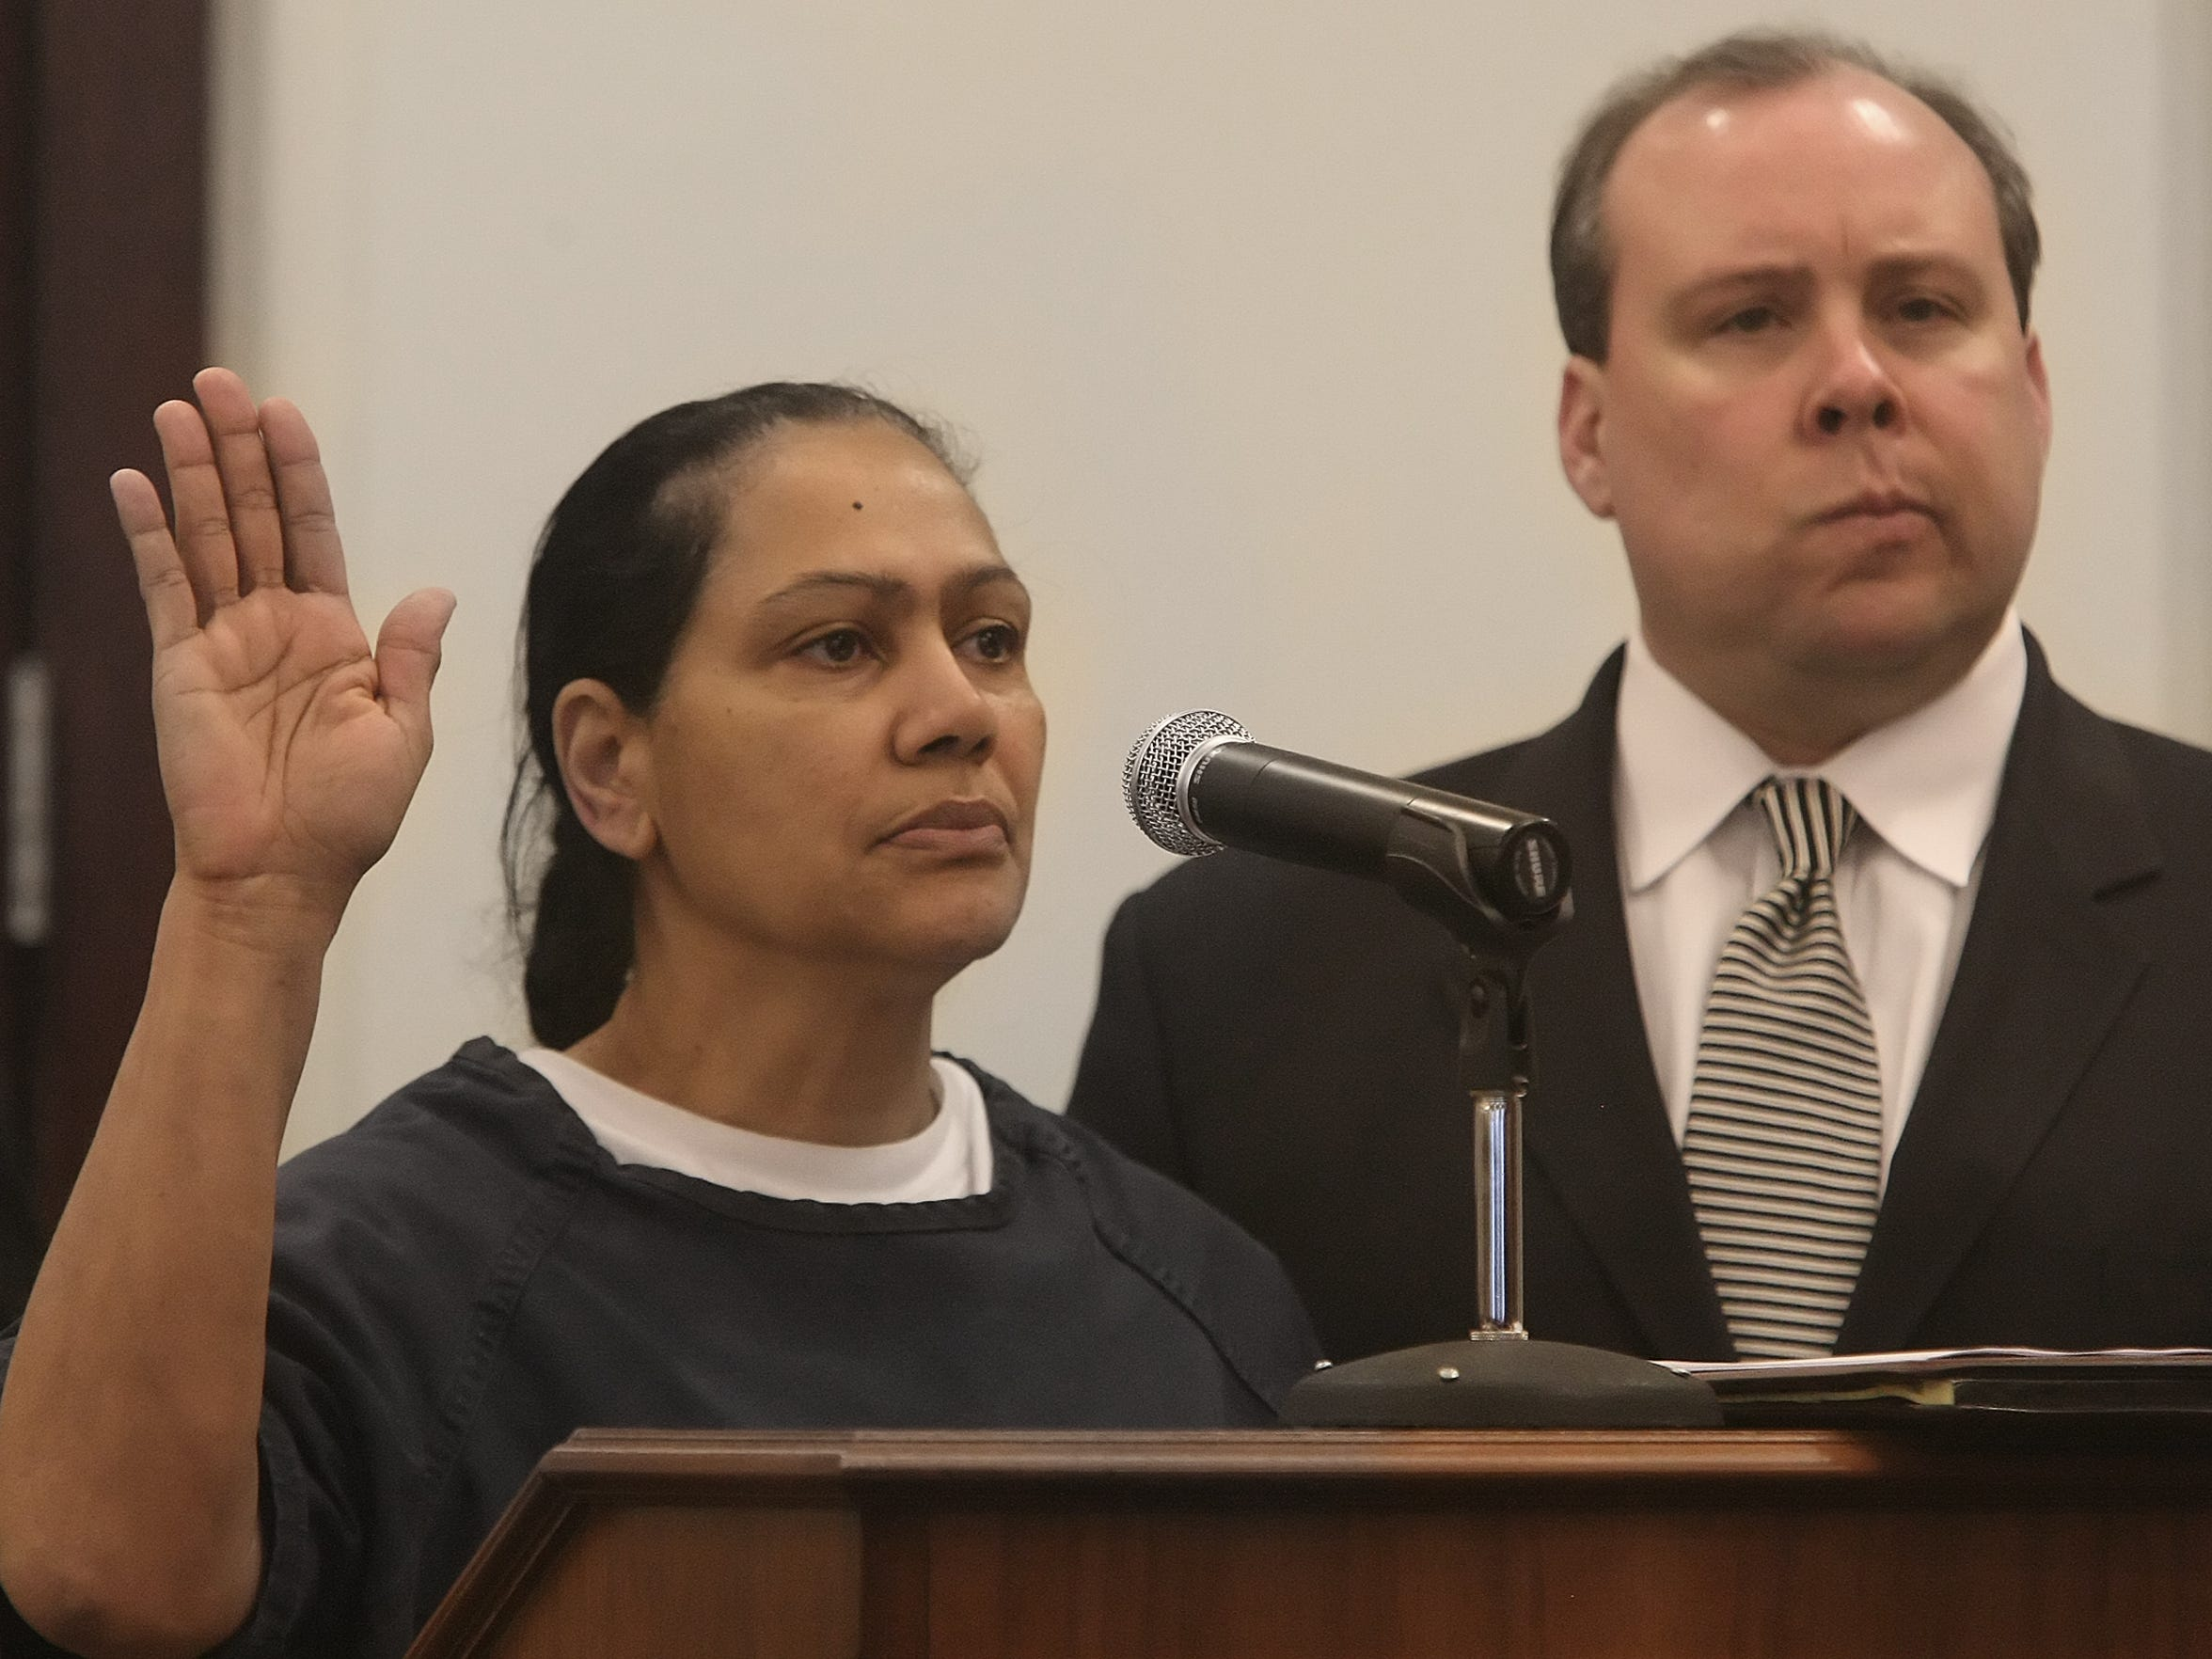 Dr. Mireille Lalanne, seen here during a 2009 court hearing, is one of several Nashville doctors identified in a Tennessee state lawsuit against Purdue Pharma. State officials allege that a clinic run by Lalanne and her ex-husband, Visuvalingarn Vilvarajah, showed obvious red flags but but Purdue continued to market Oxycontin to her clinic. Lalanne was convicted of drug trafficking in 2010.